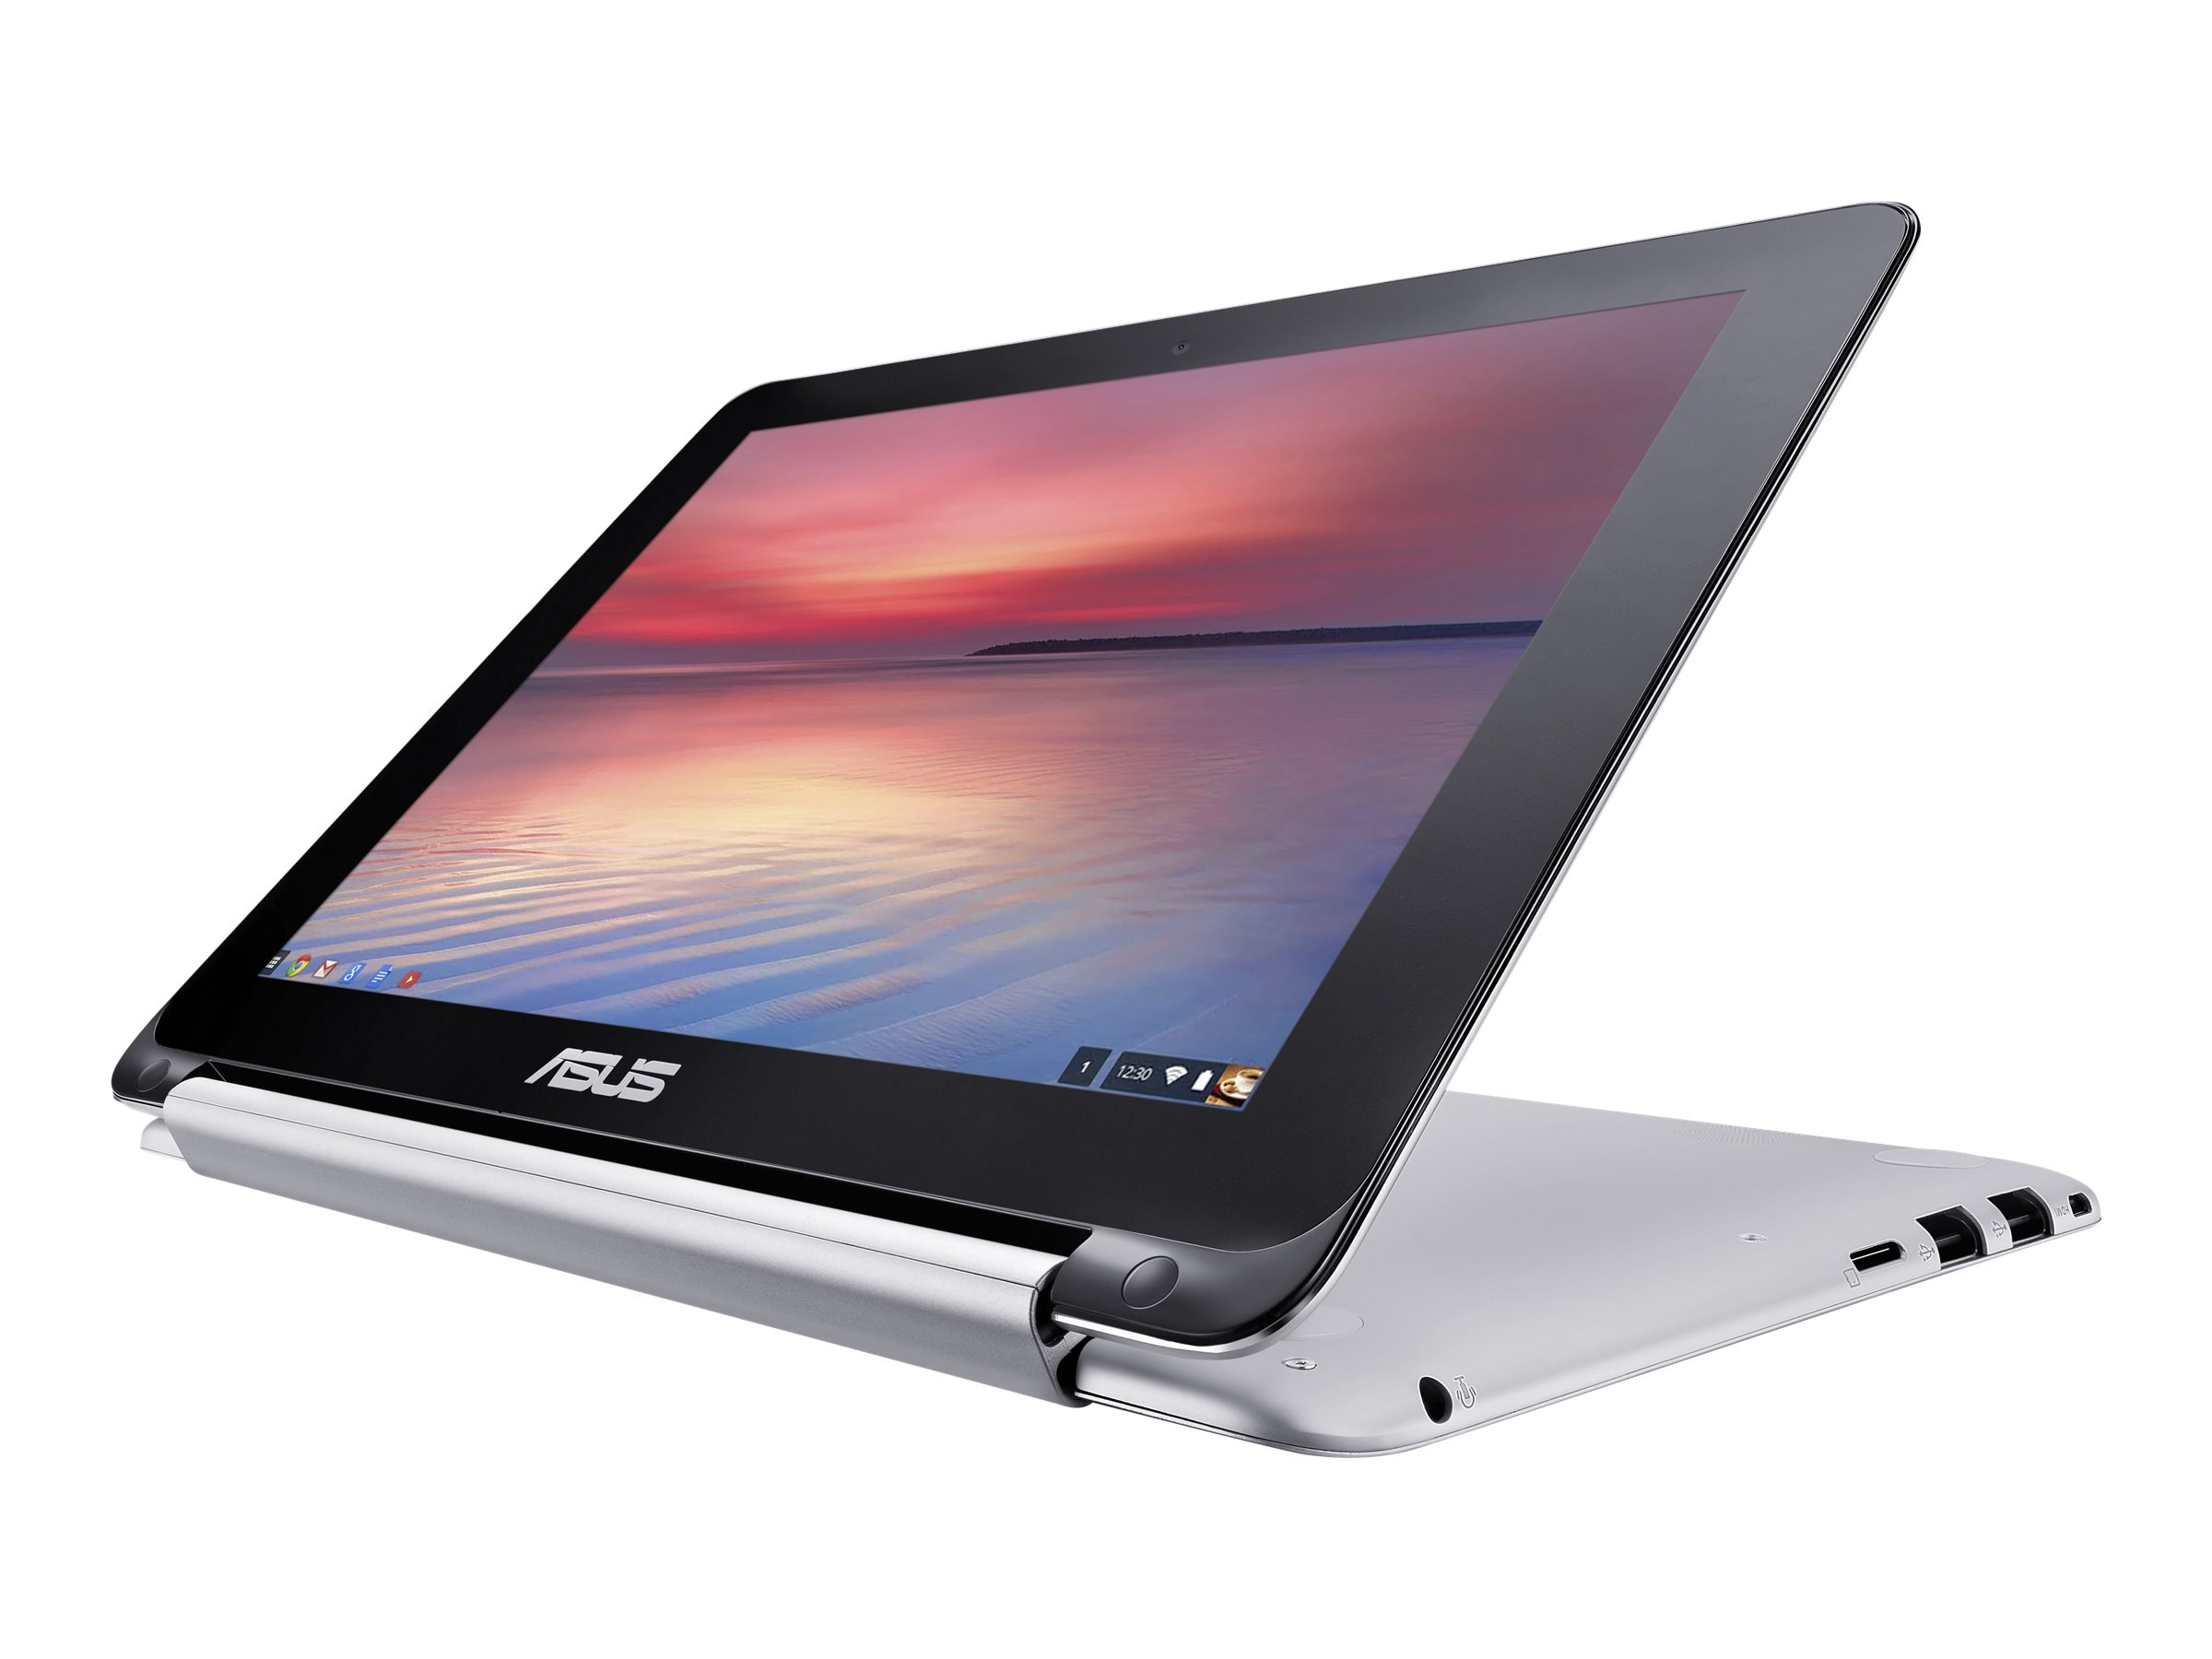 Asus EeeBook 2GB 16GB SSD 10.1 Touch Chrome Silver, C100PA-DB01, 24747811, Notebooks